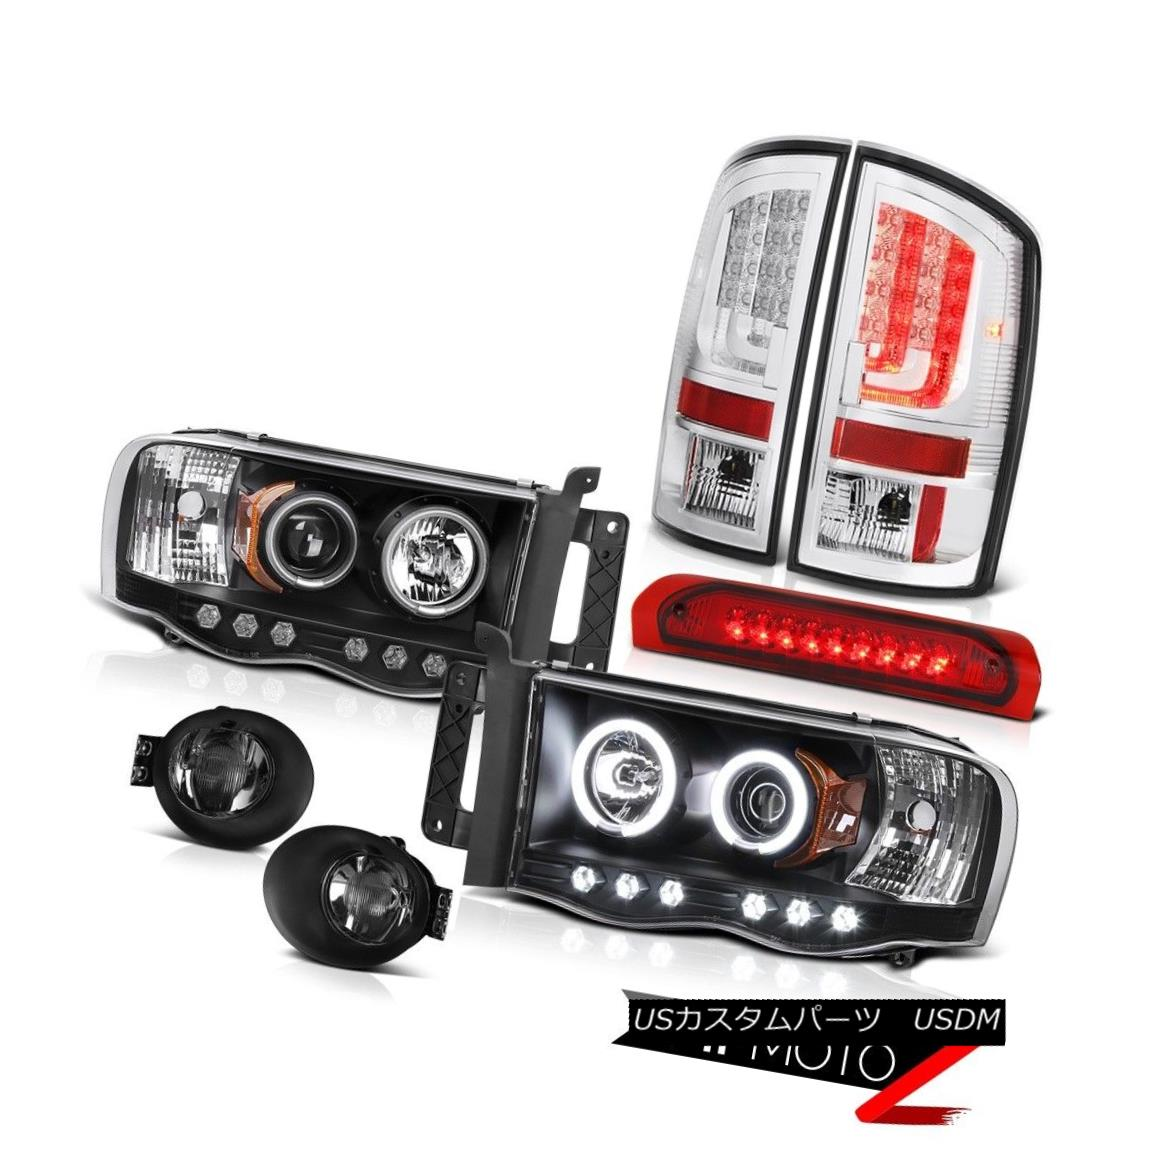 テールライト 2003-2005 Dodge Ram 2500 WS Tail Lights Fog Headlights 3RD Brake Light NeweST 2003-2005 Dodge Ram 2500 WSテールライトフォグヘッドライト3RDブレーキライトNeweST